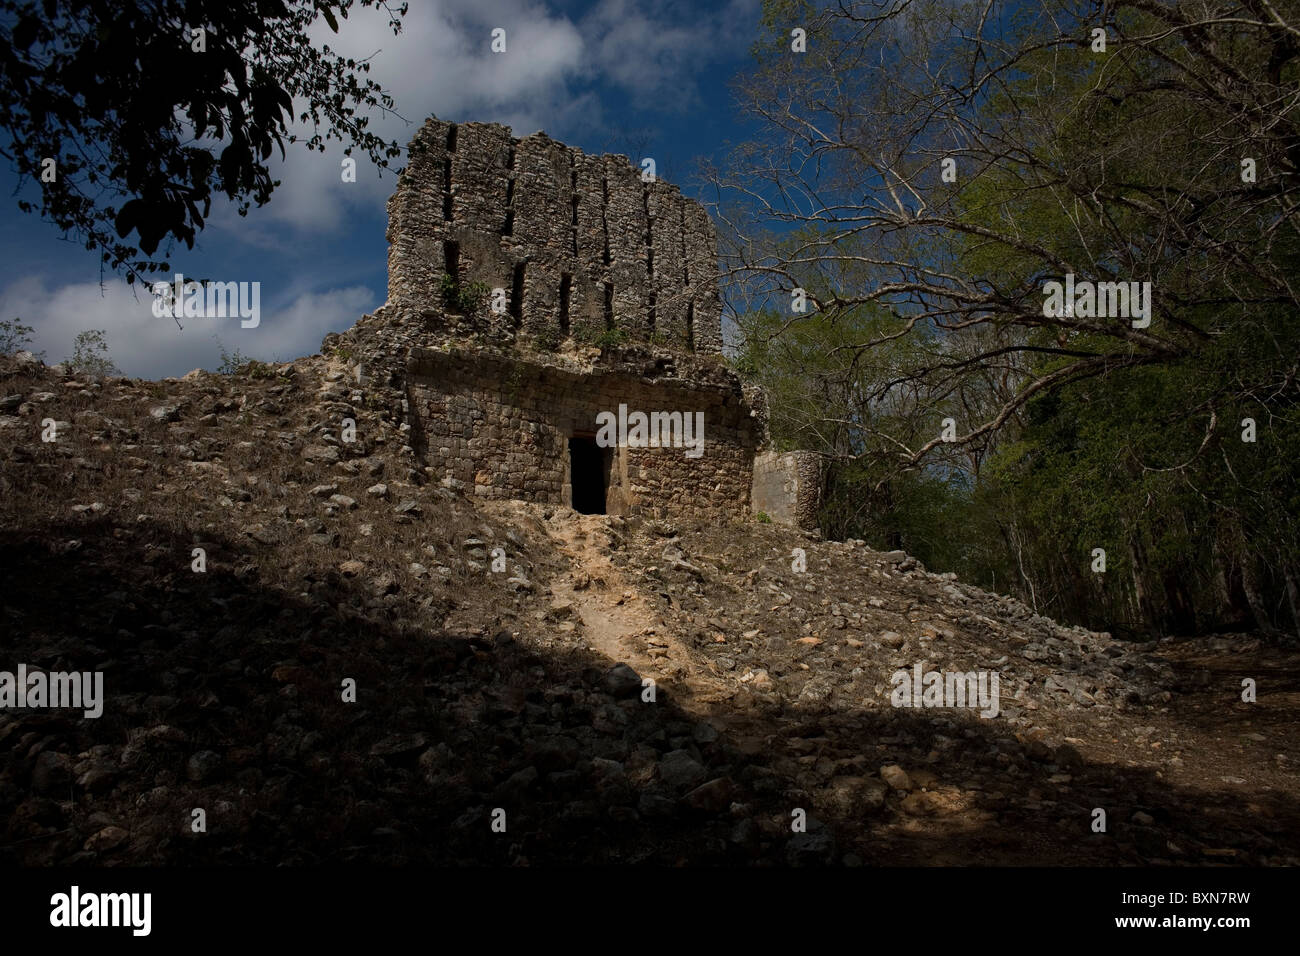 Building of the Mayan ruins of Sayil, along the Puuc route, in Yucatan state on Mexico's Yucatan peninsula, June Stock Photo